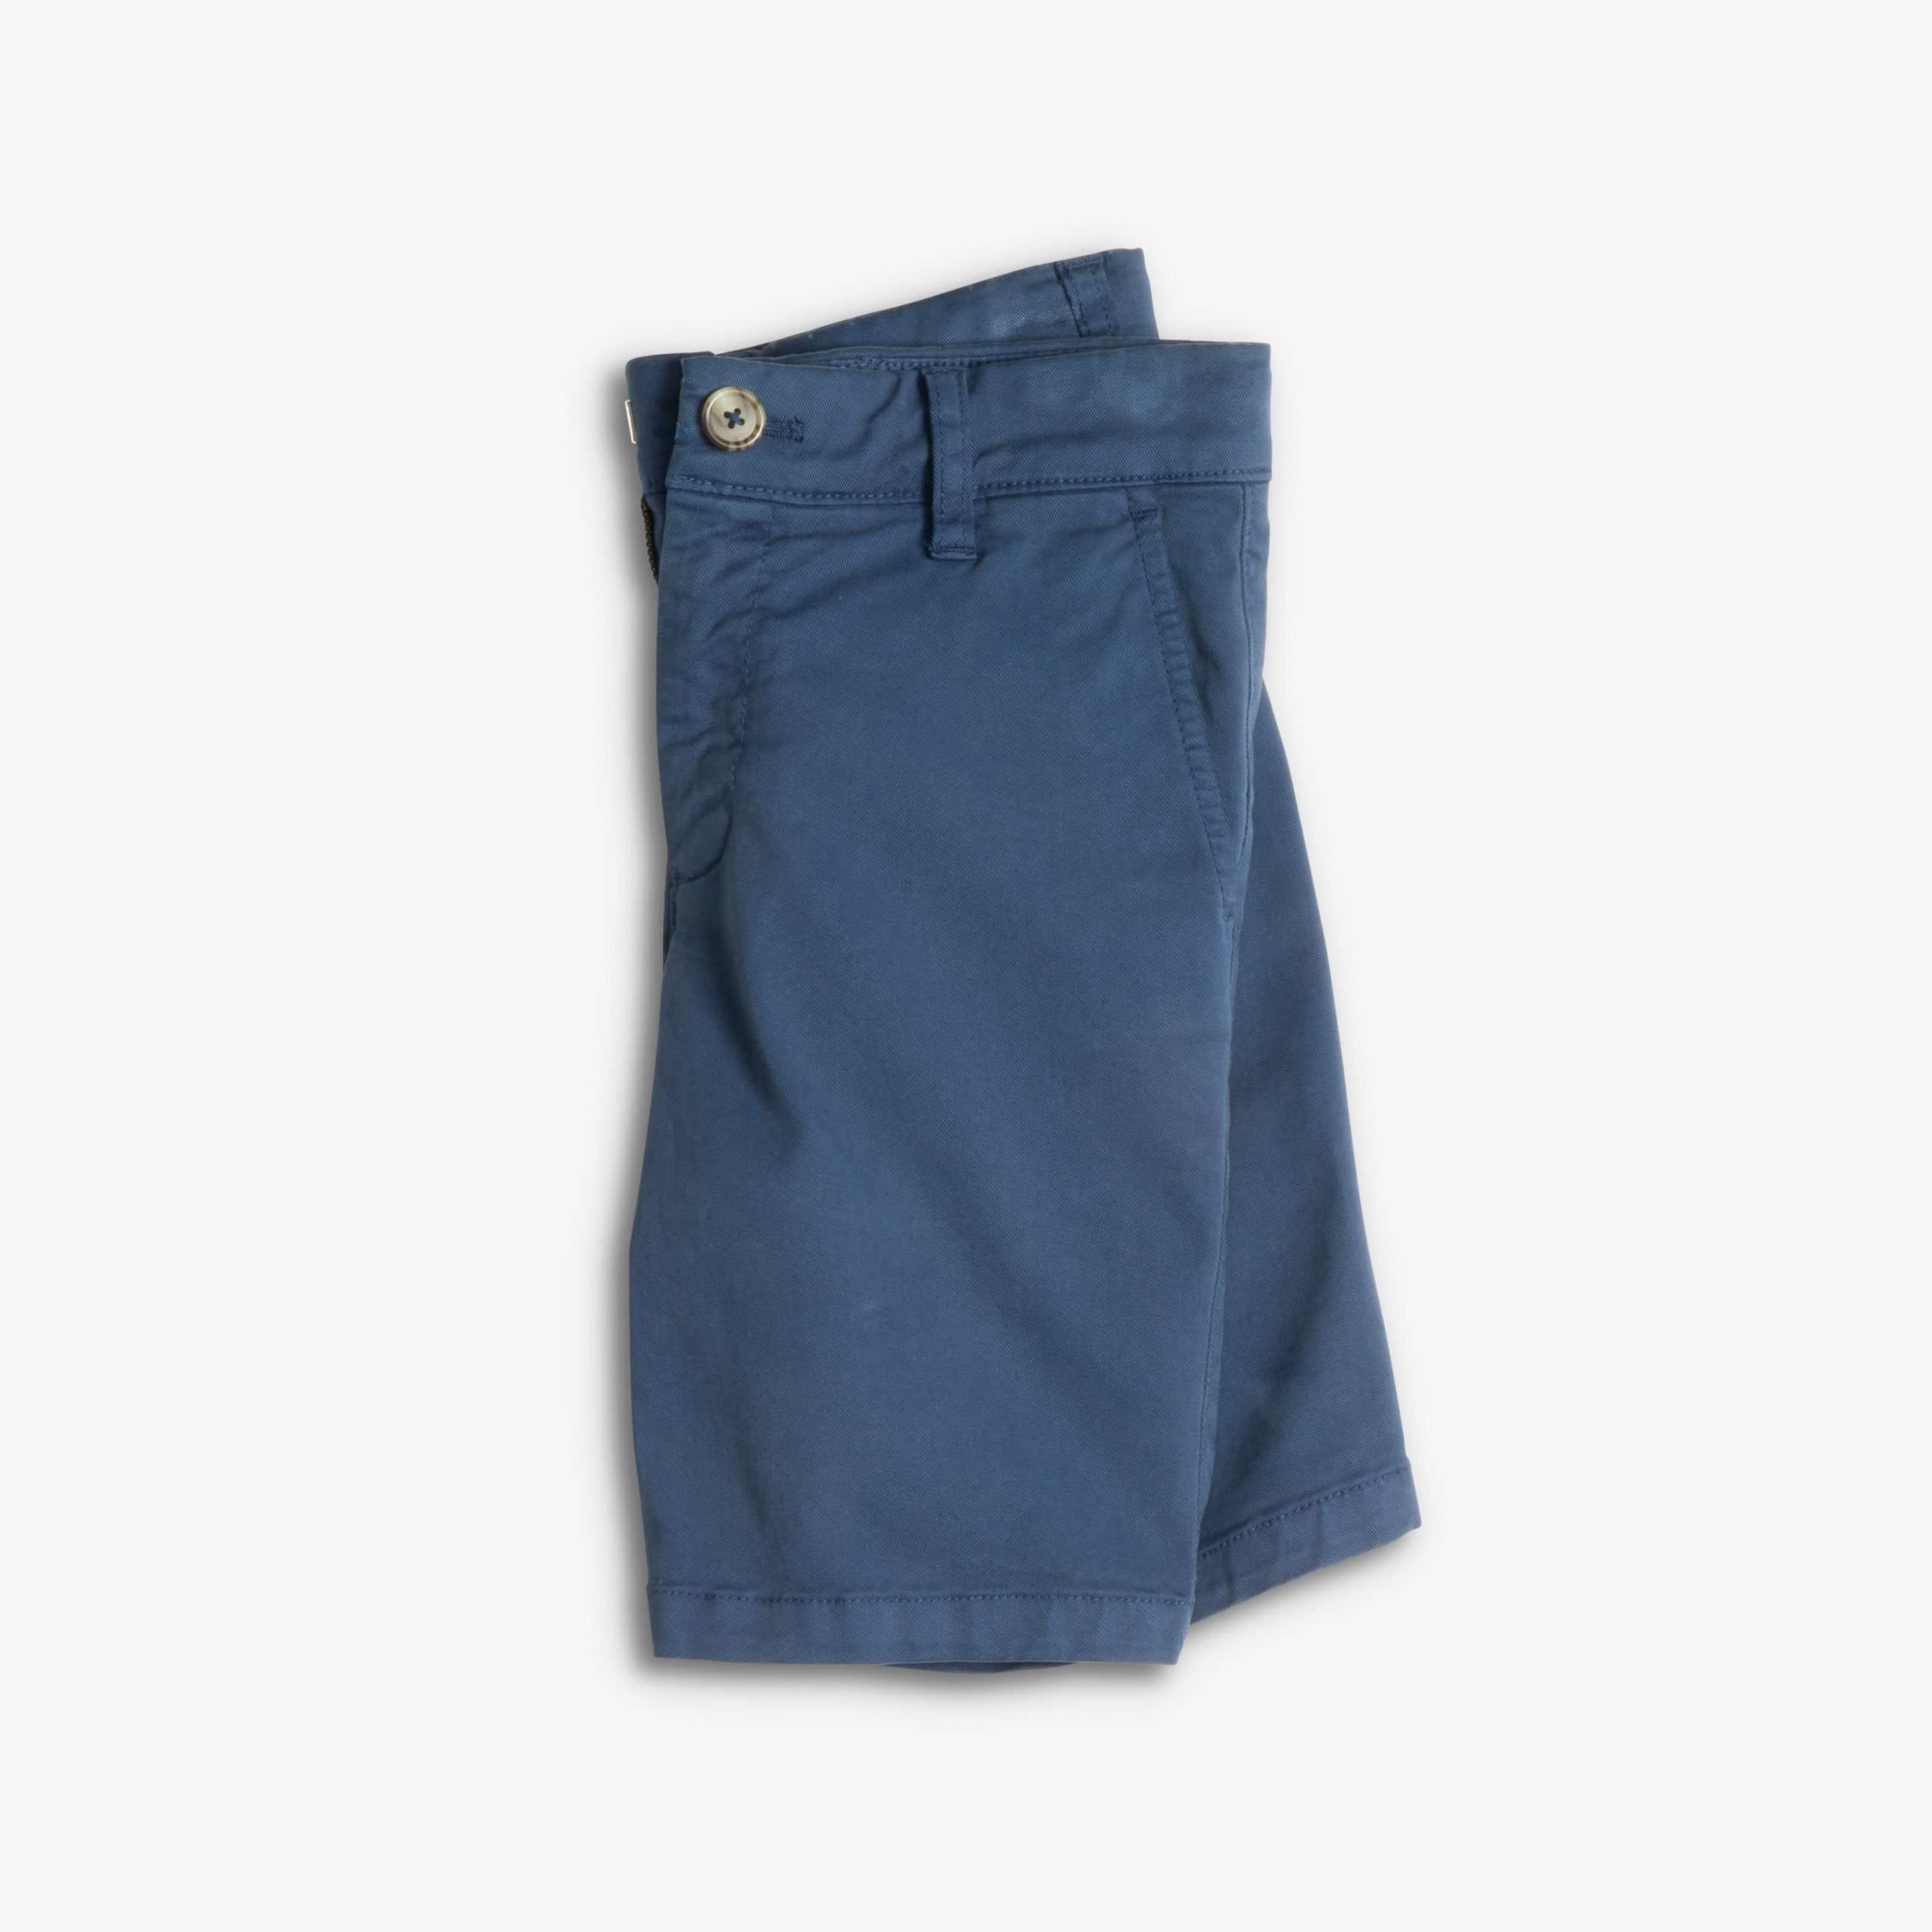 NEAL JR STRETCH TWILL SHORTS